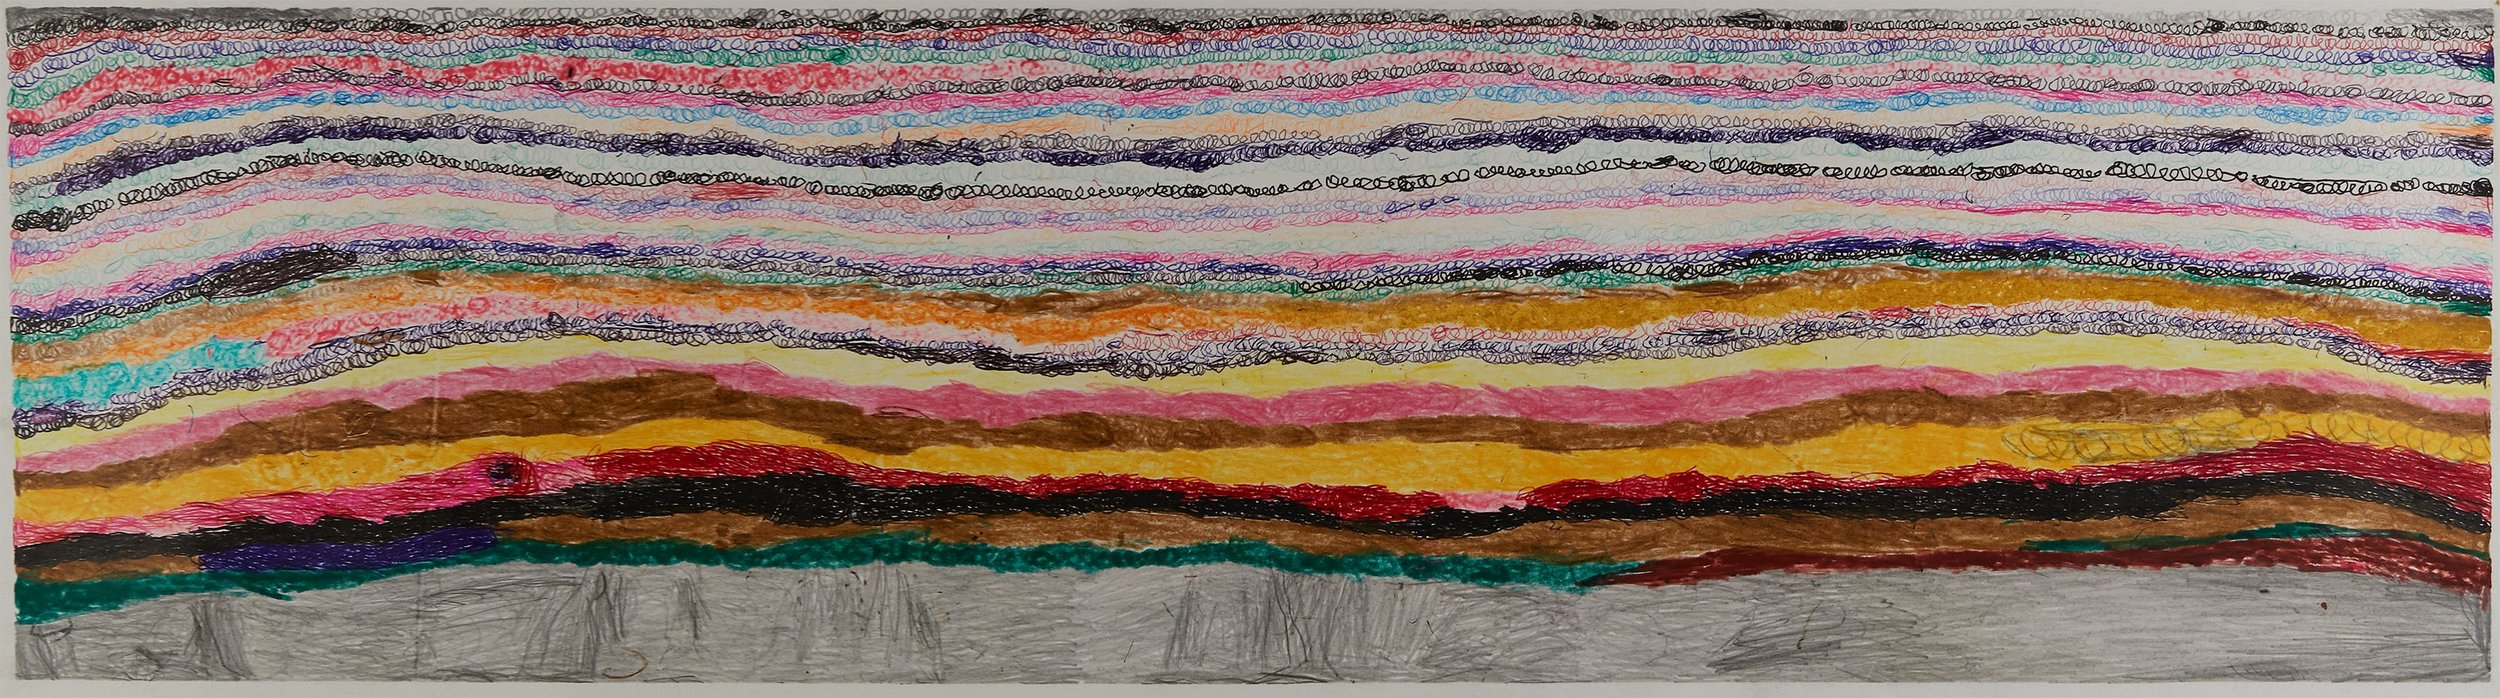 Joseph Lambert  Untitled  , 2017 Ink, marker, pencil, crayon on paper 9.45 x 33.66 inches 24 x 85.5 cm JLam 31